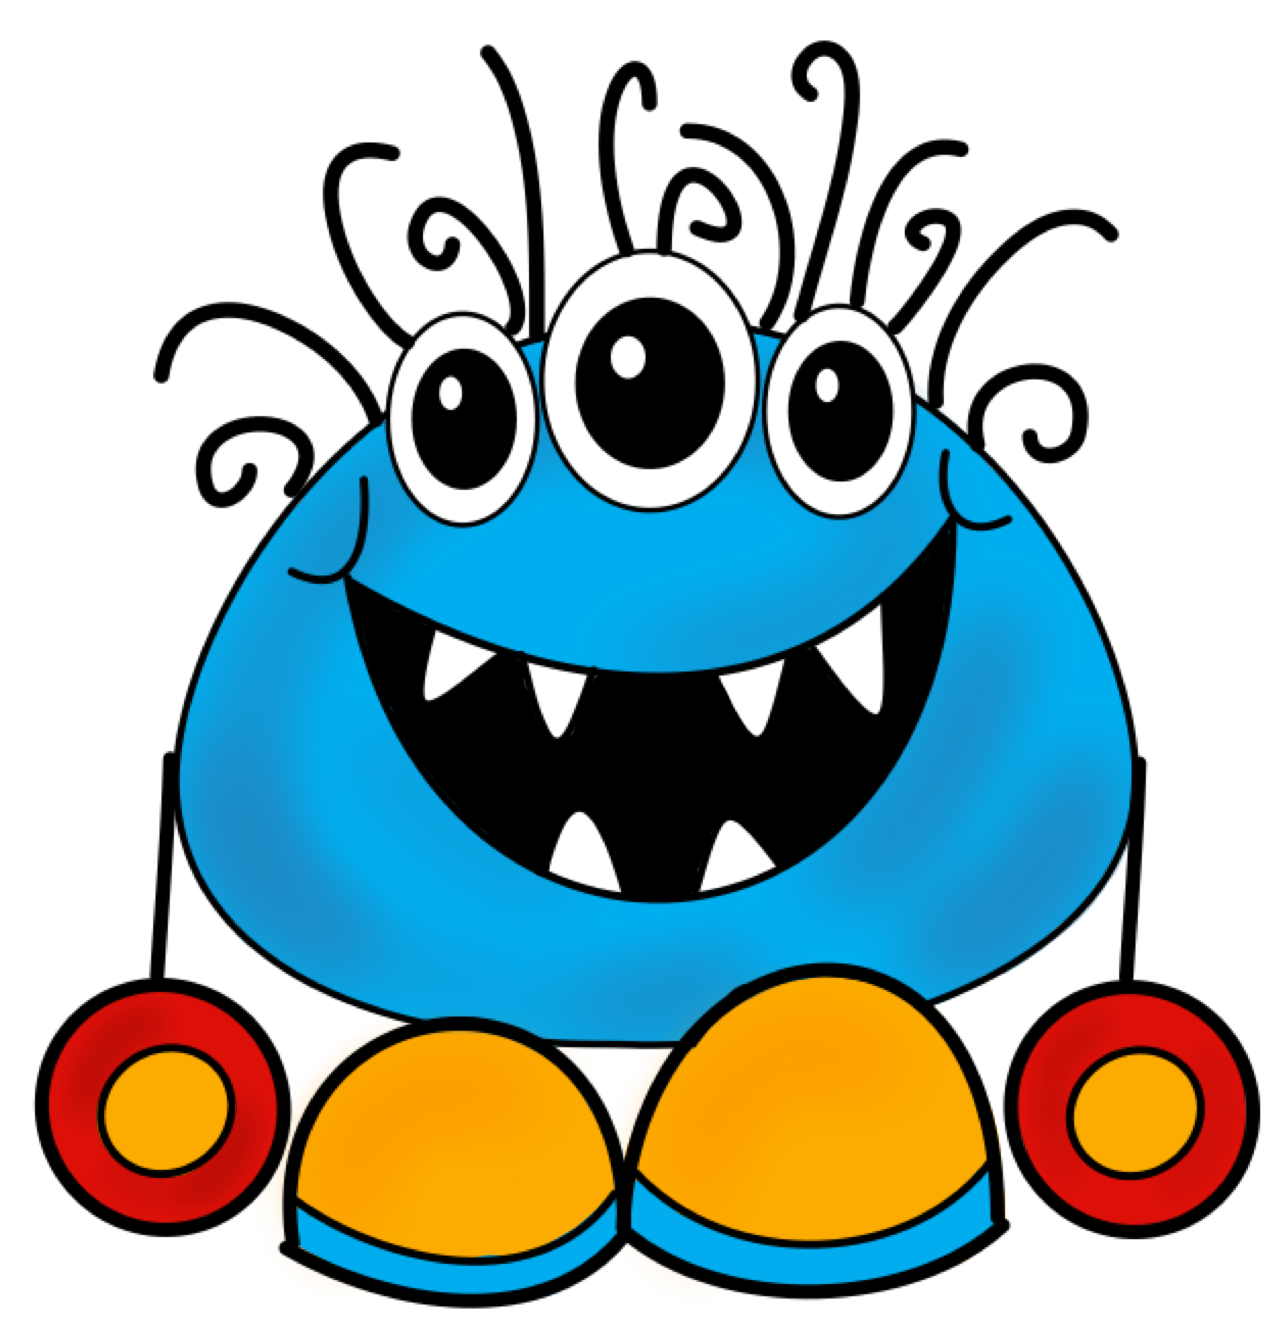 Monster Clip Art Images | Clipart Panda - Free Clipart Images